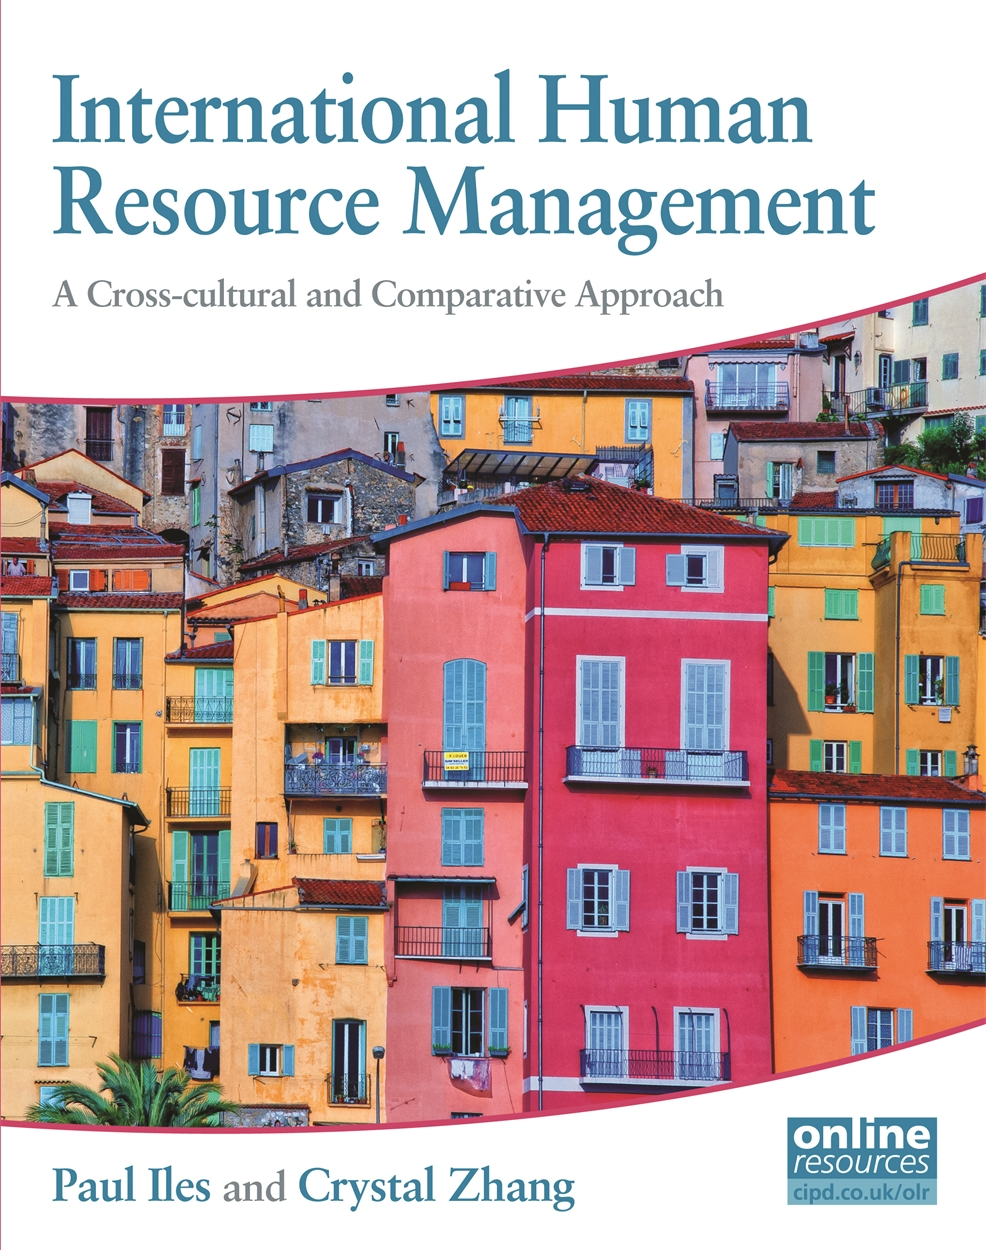 international human resources management The earlier editions of this bestselling textbook have guided thousands of students through their international human resource management studies.